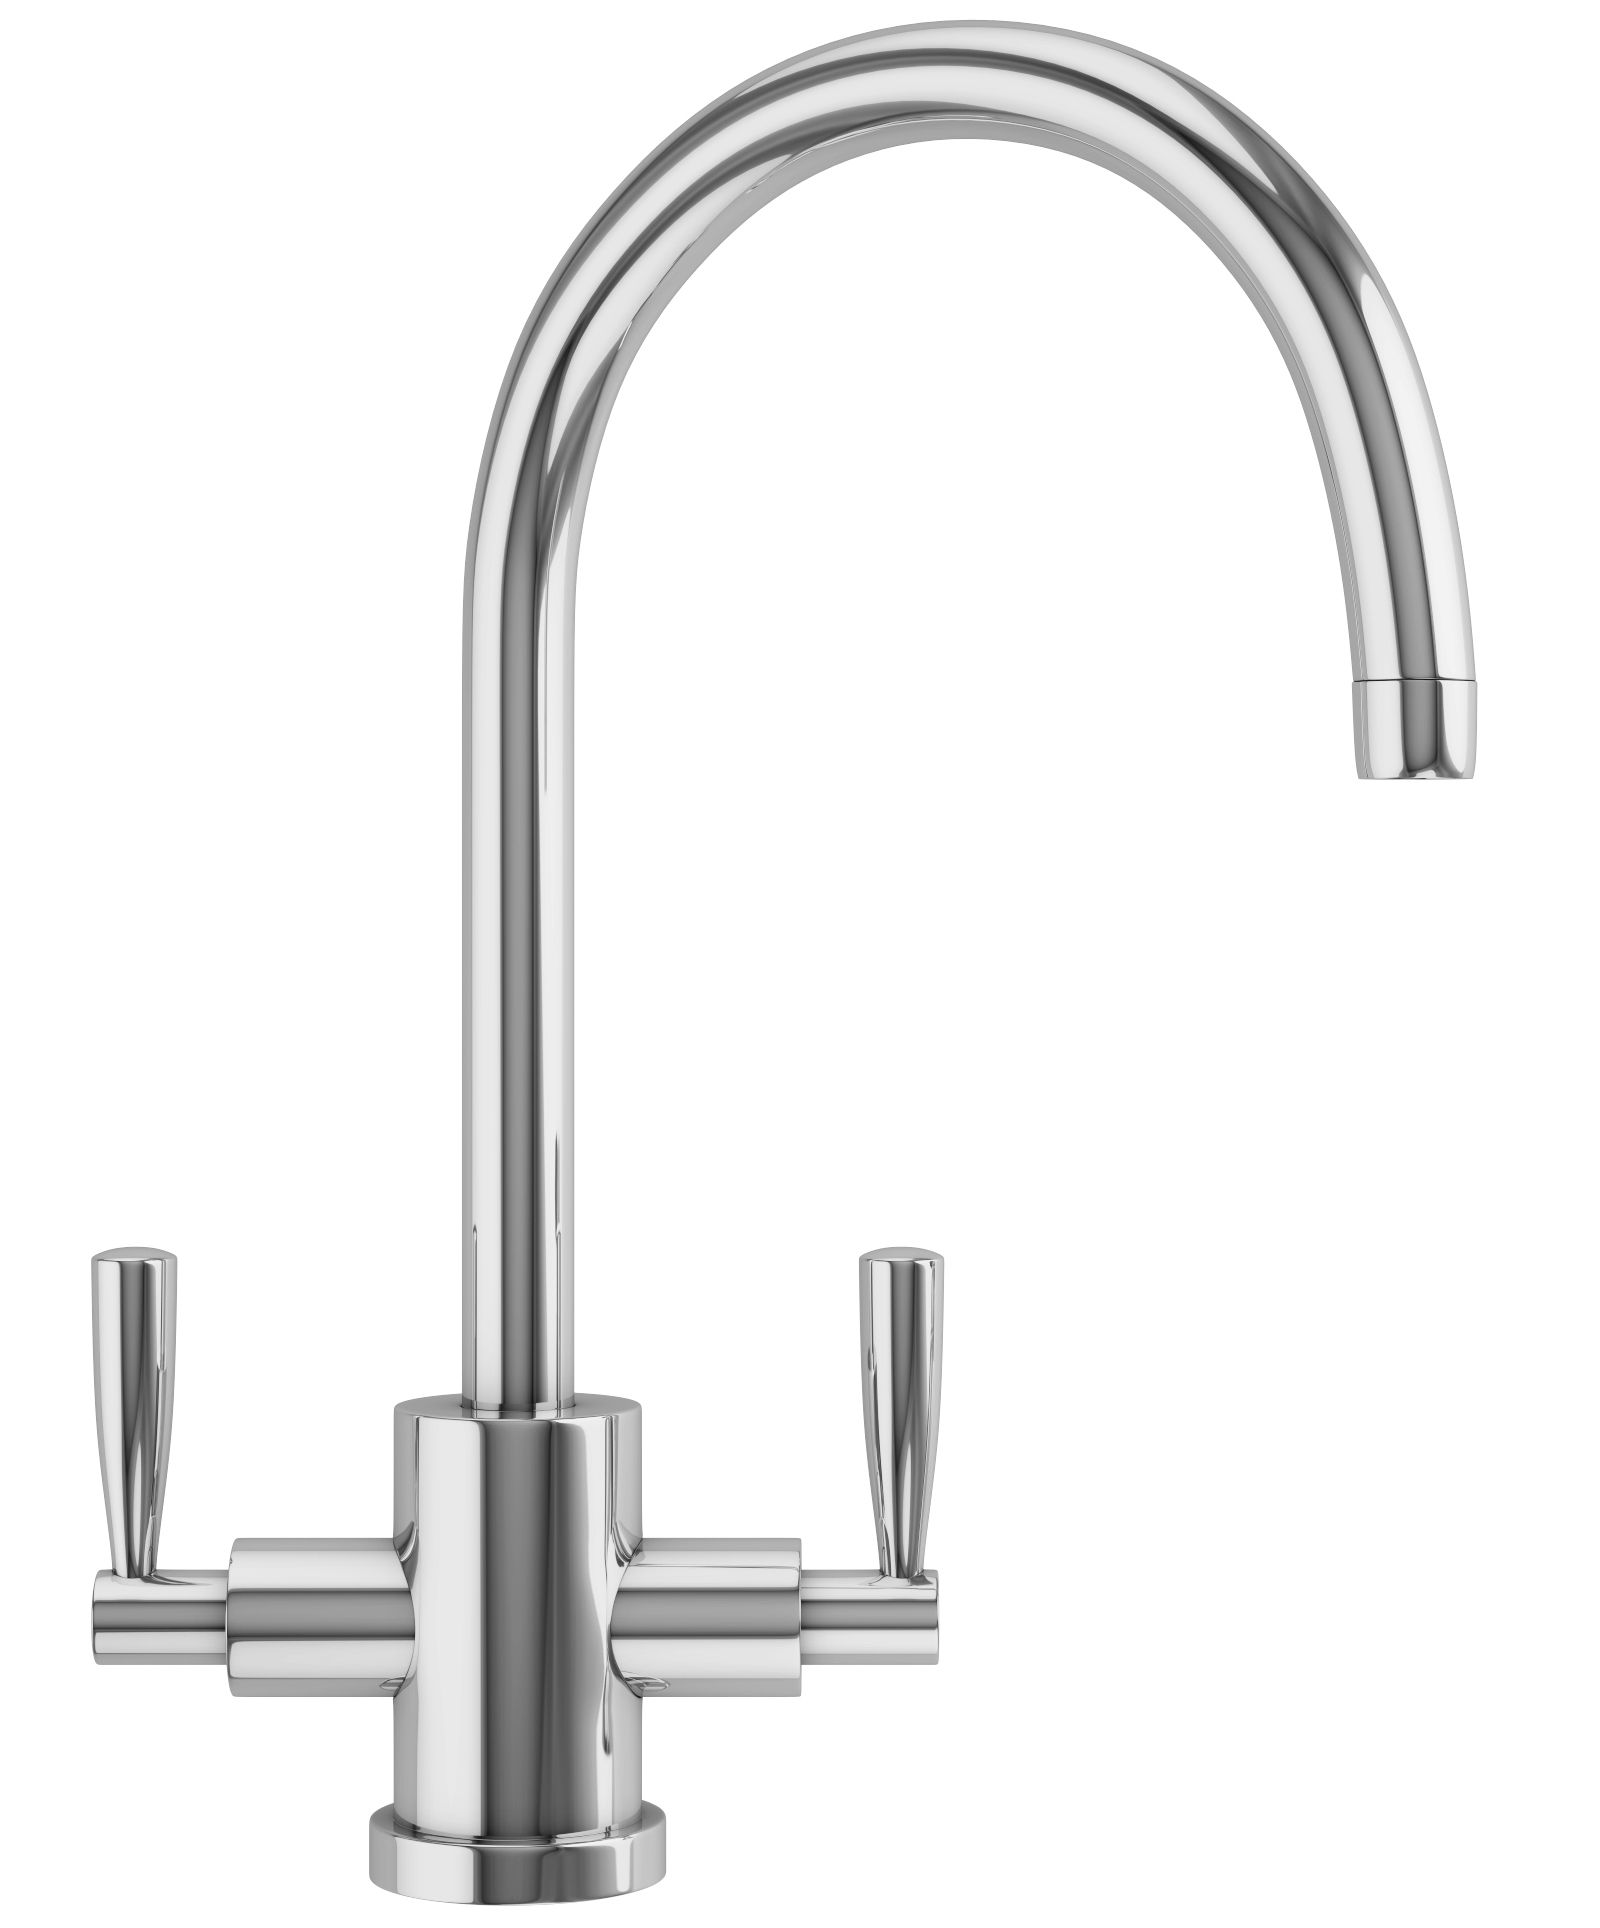 franke olympus chrome kitchen sink mixer tap | kitchen | pinterest